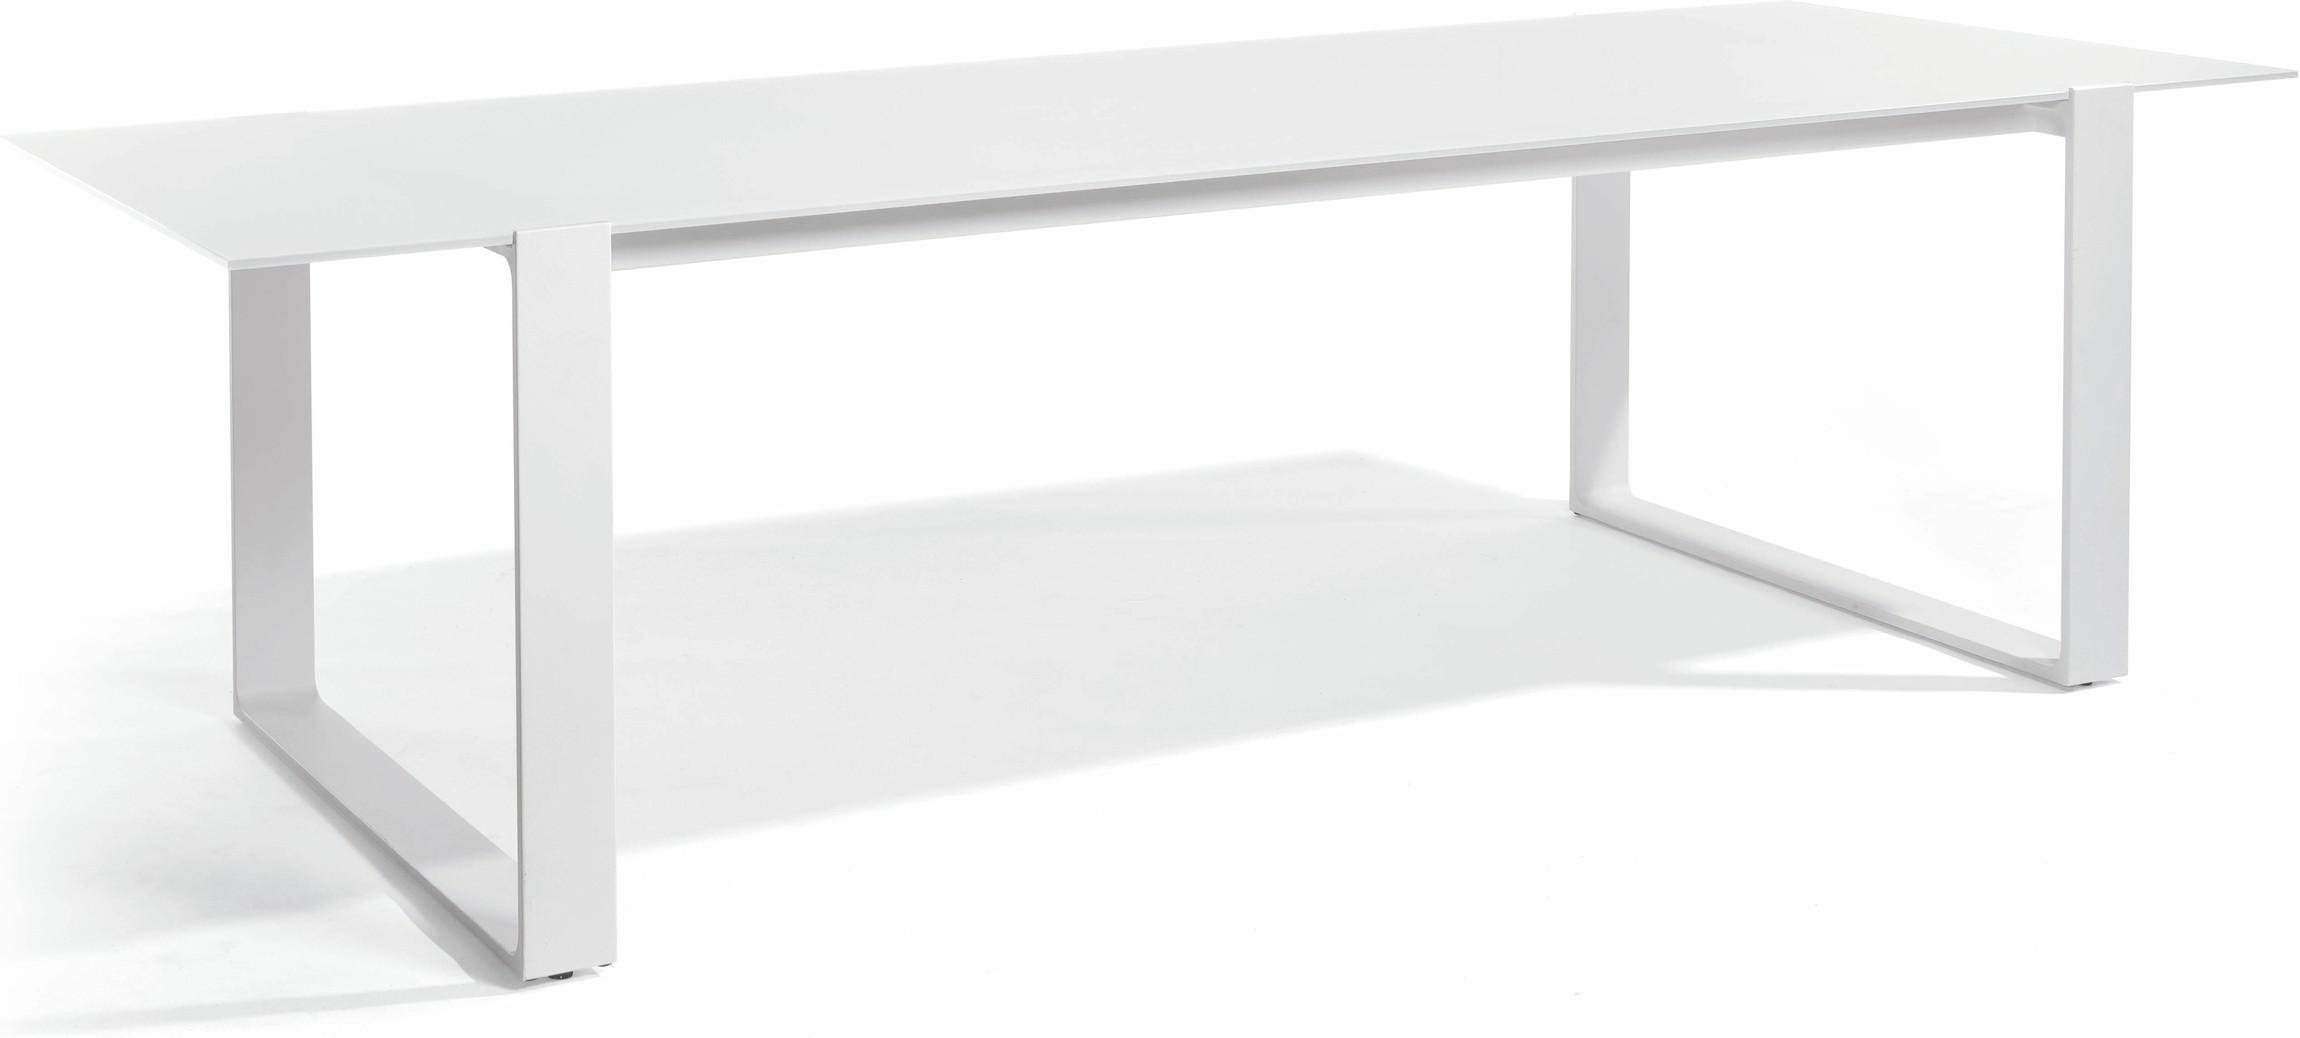 Prato Dining table - white - glass white 270